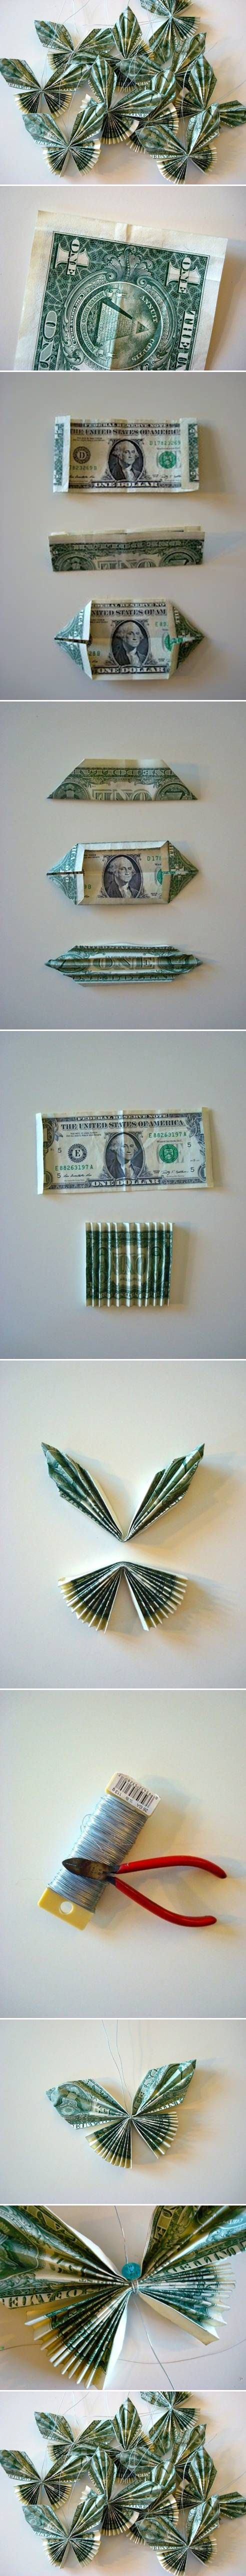 Diy money bill butterfly diy projects usefuldiy good ideas diy money bill butterfly diy projects usefuldiy dollar origamieasy jeuxipadfo Image collections